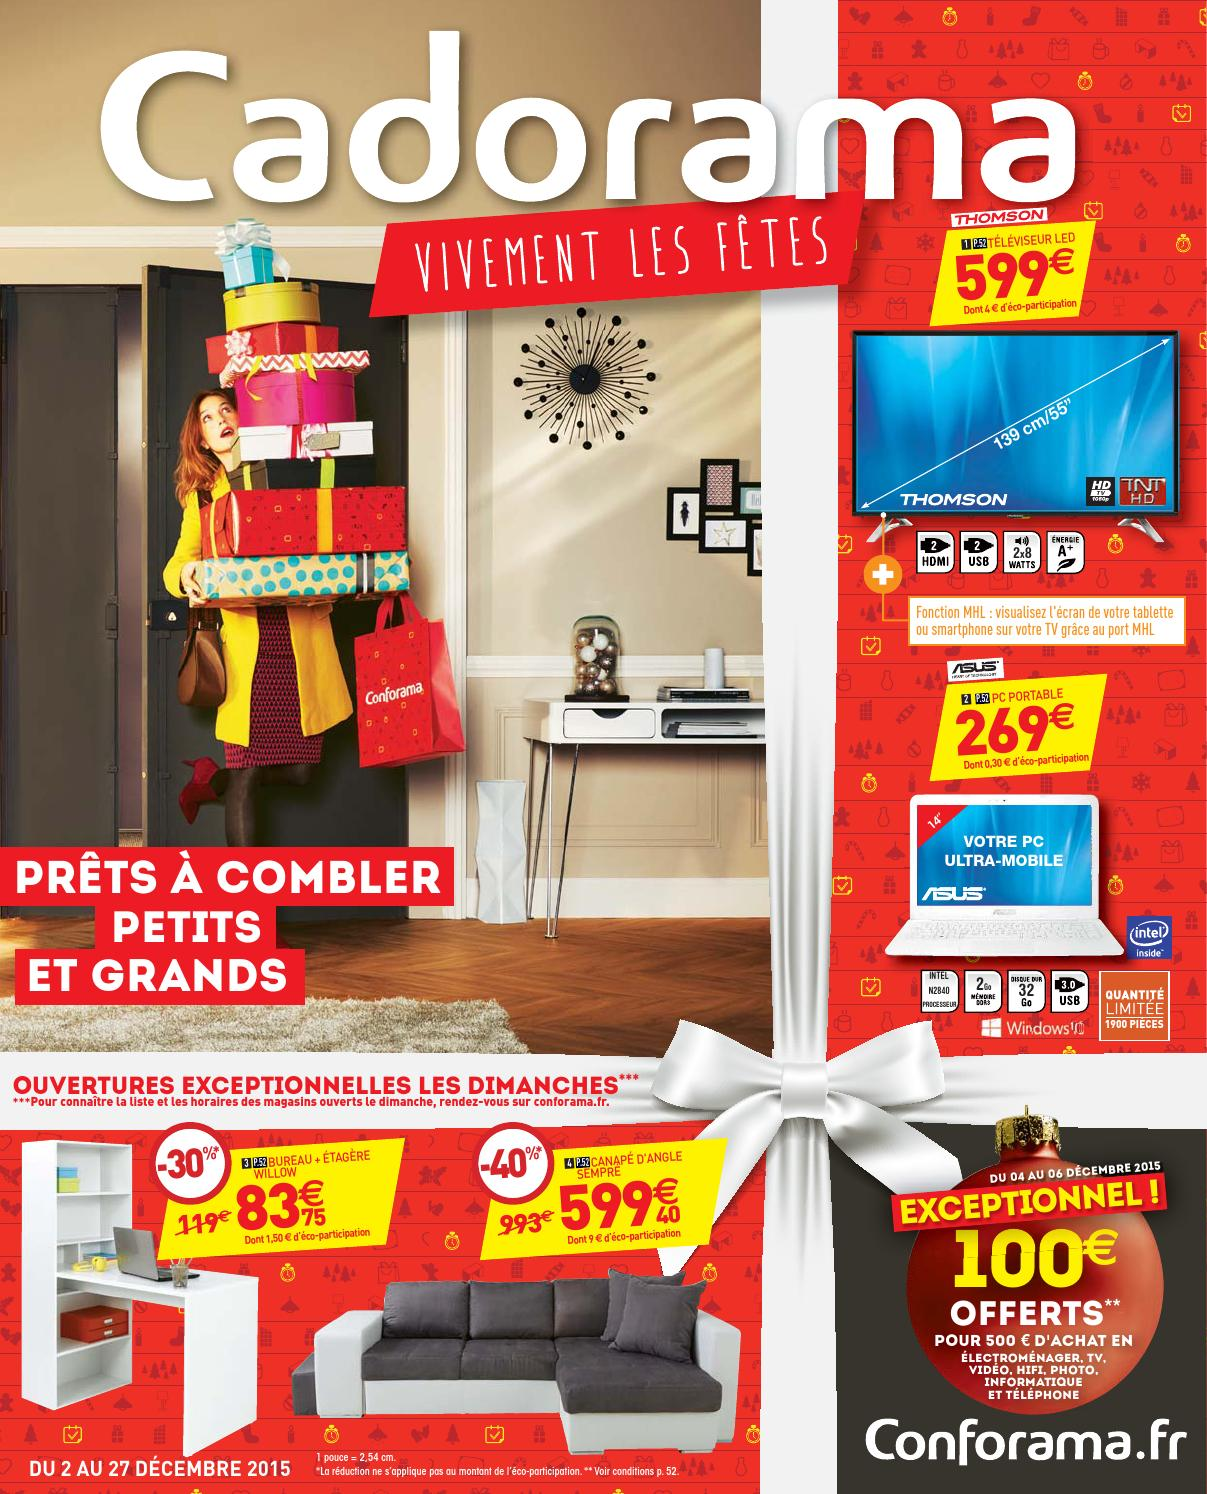 Conforama catalogue 2 27decembre2015 by promocatalogues for Canape conforama sempre